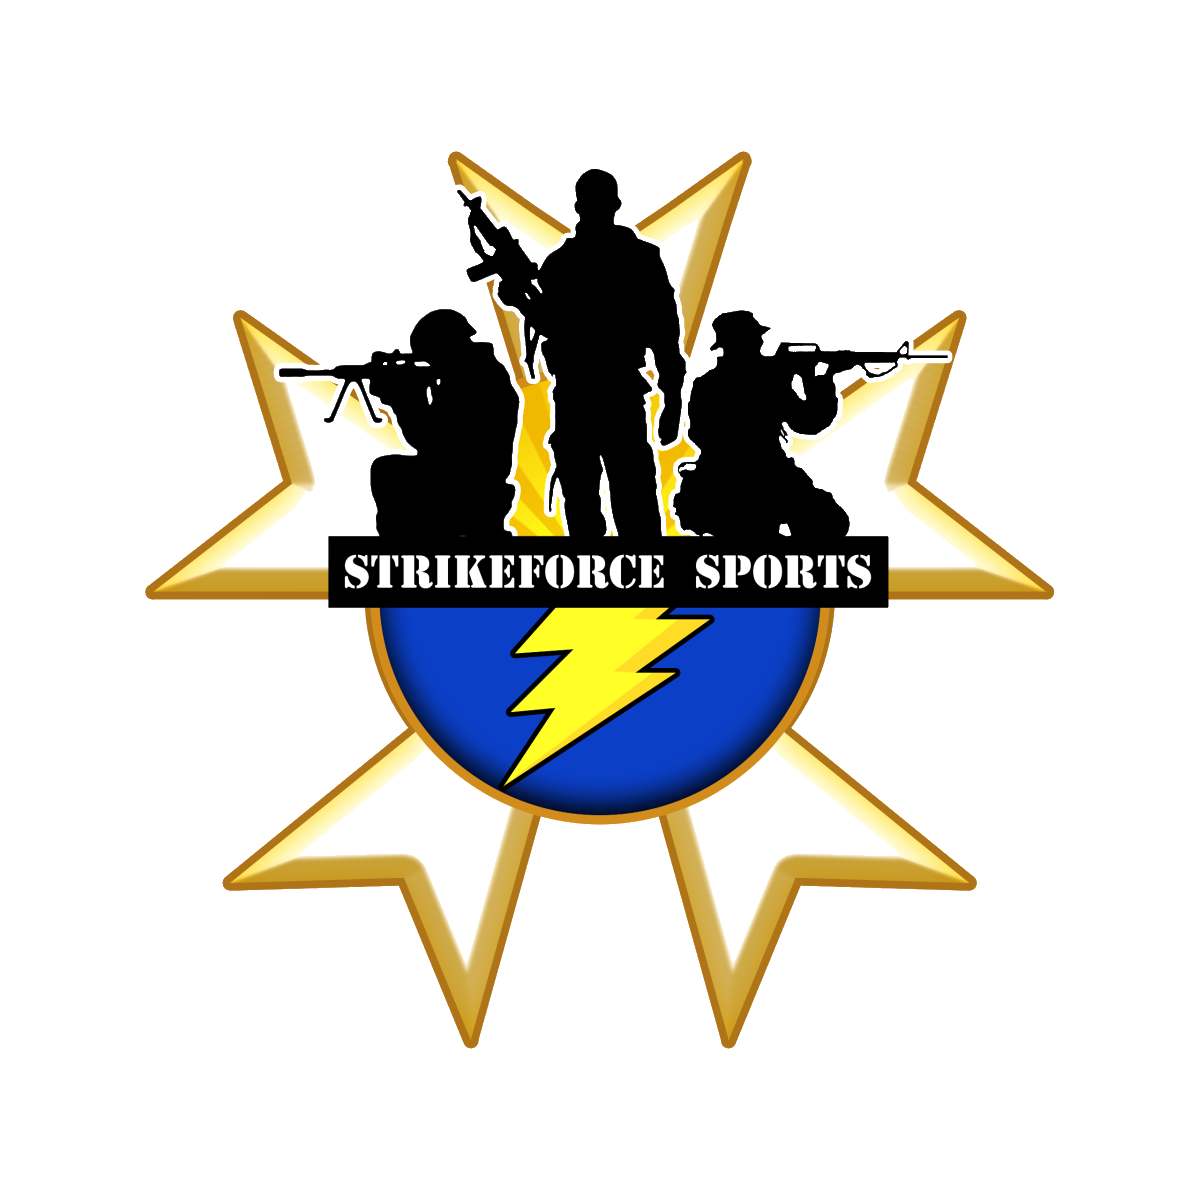 Strikeforce sports coupons - Sf Sports Community Strikeforce Sports Airsoft